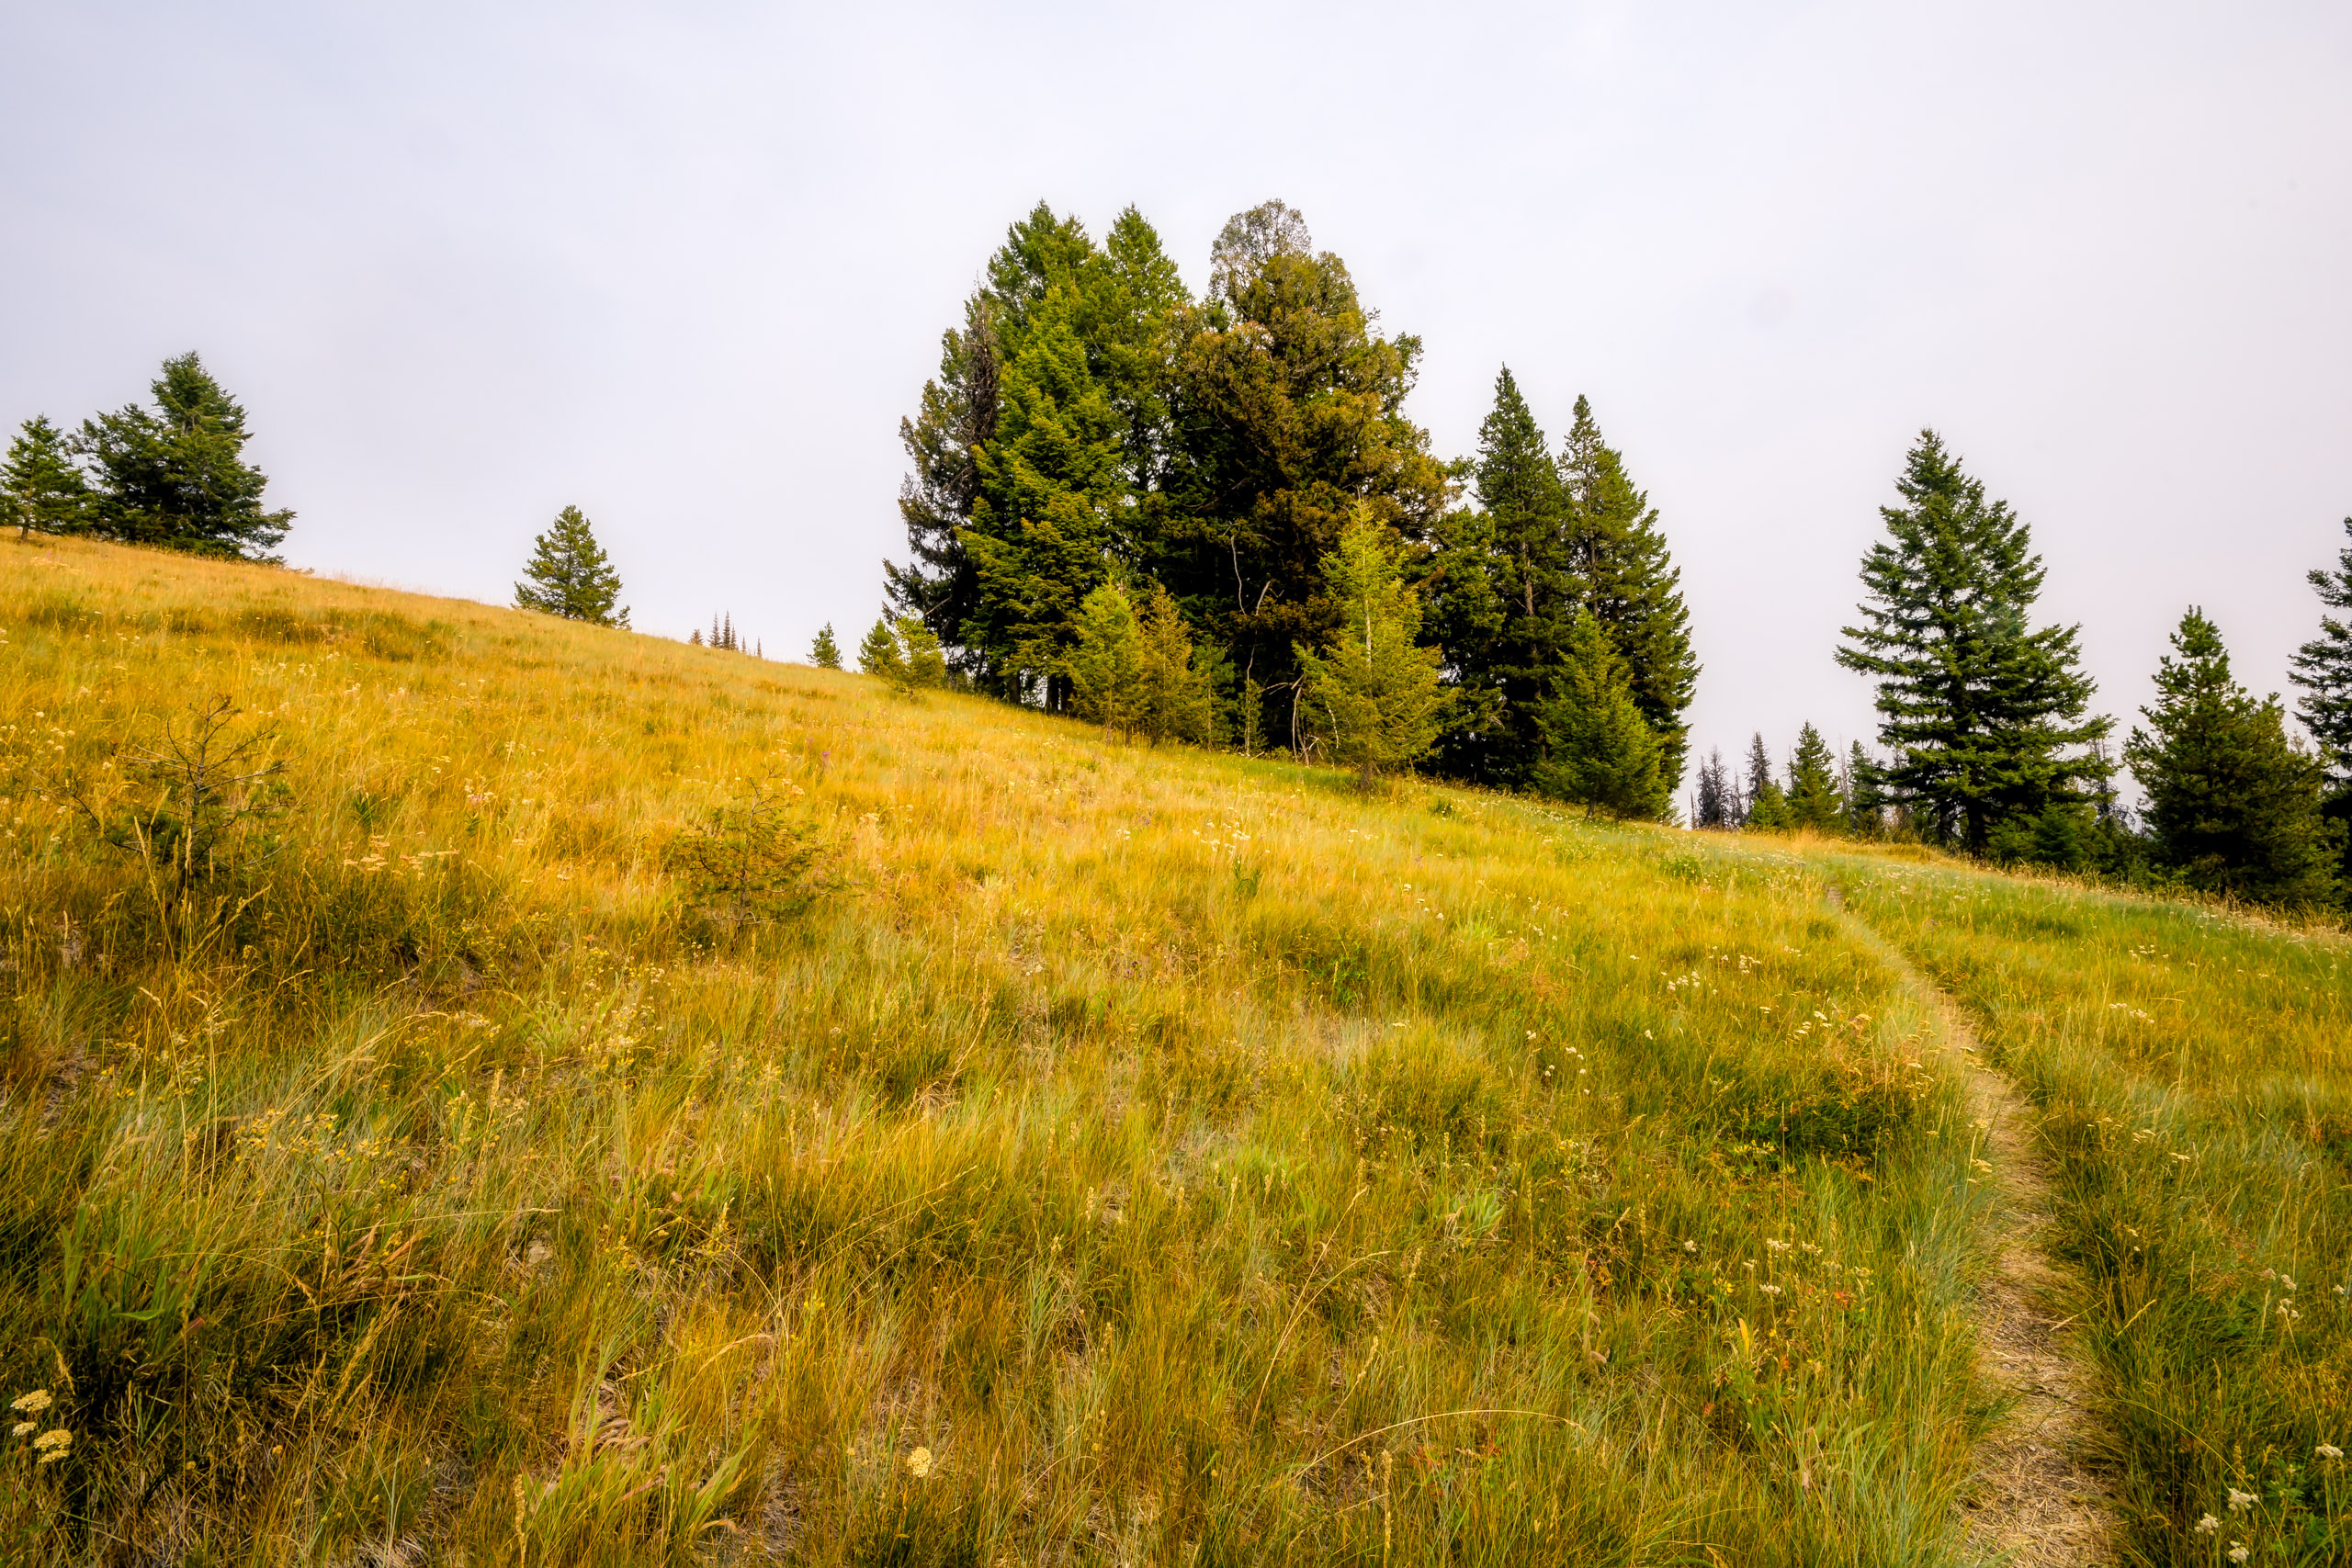 Loved hiking through this meadow